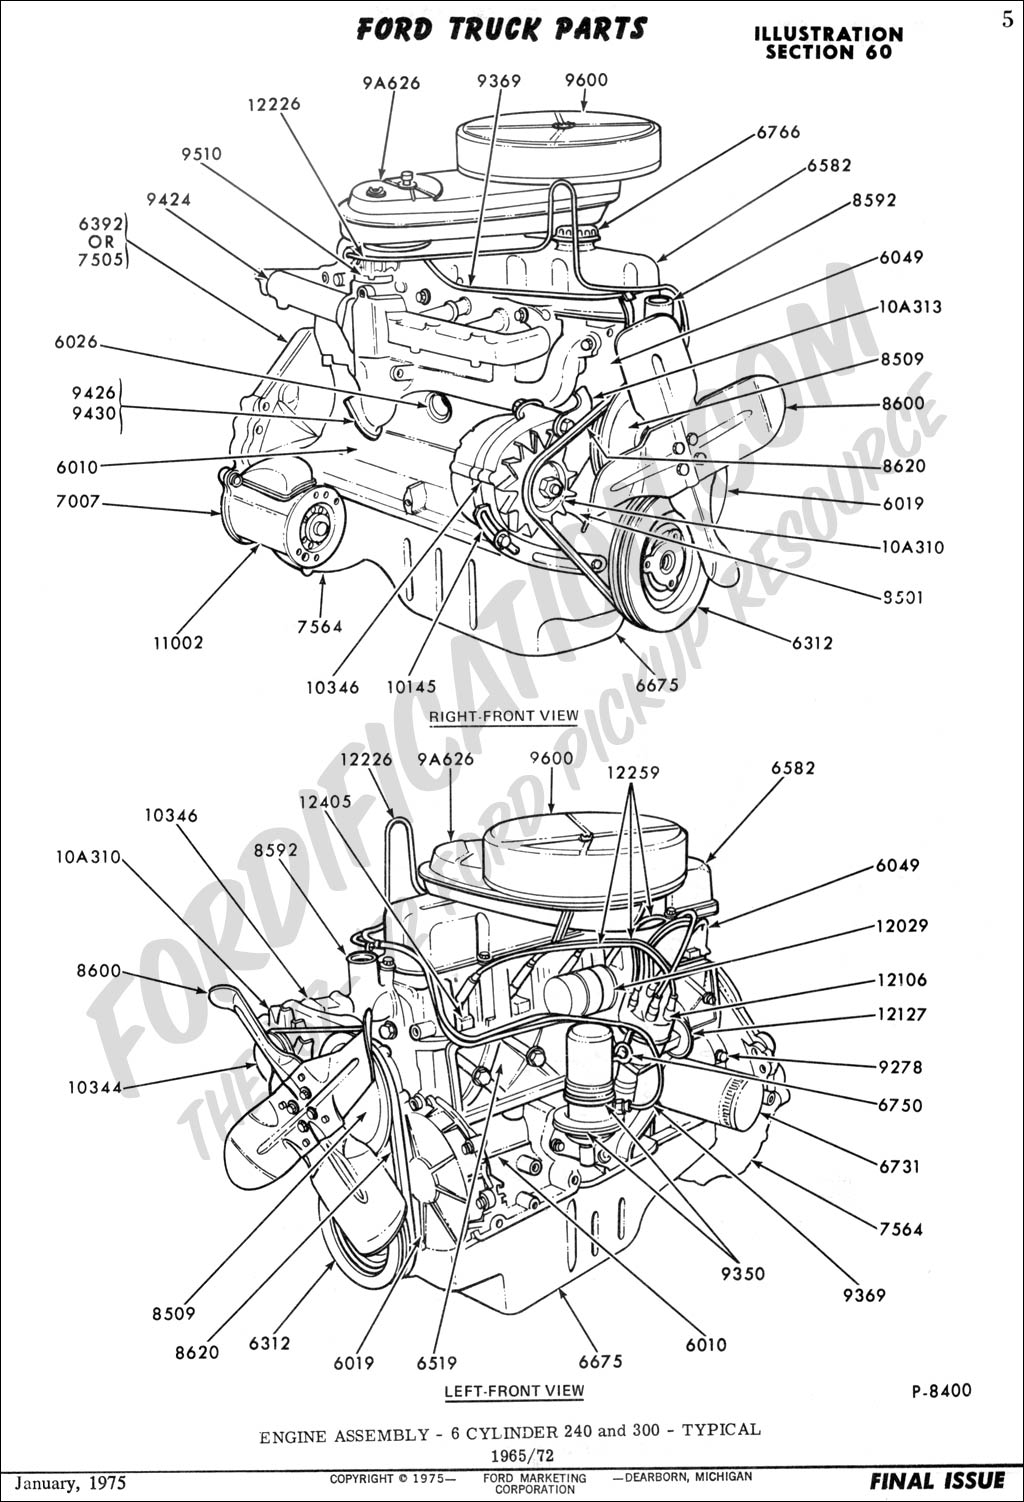 inline 6 cylinder engine diagram online wiring diagramford 240 engine diagram wiring schematic diagram6 cylinder ford industrial engine wiring diagram wiring library ford